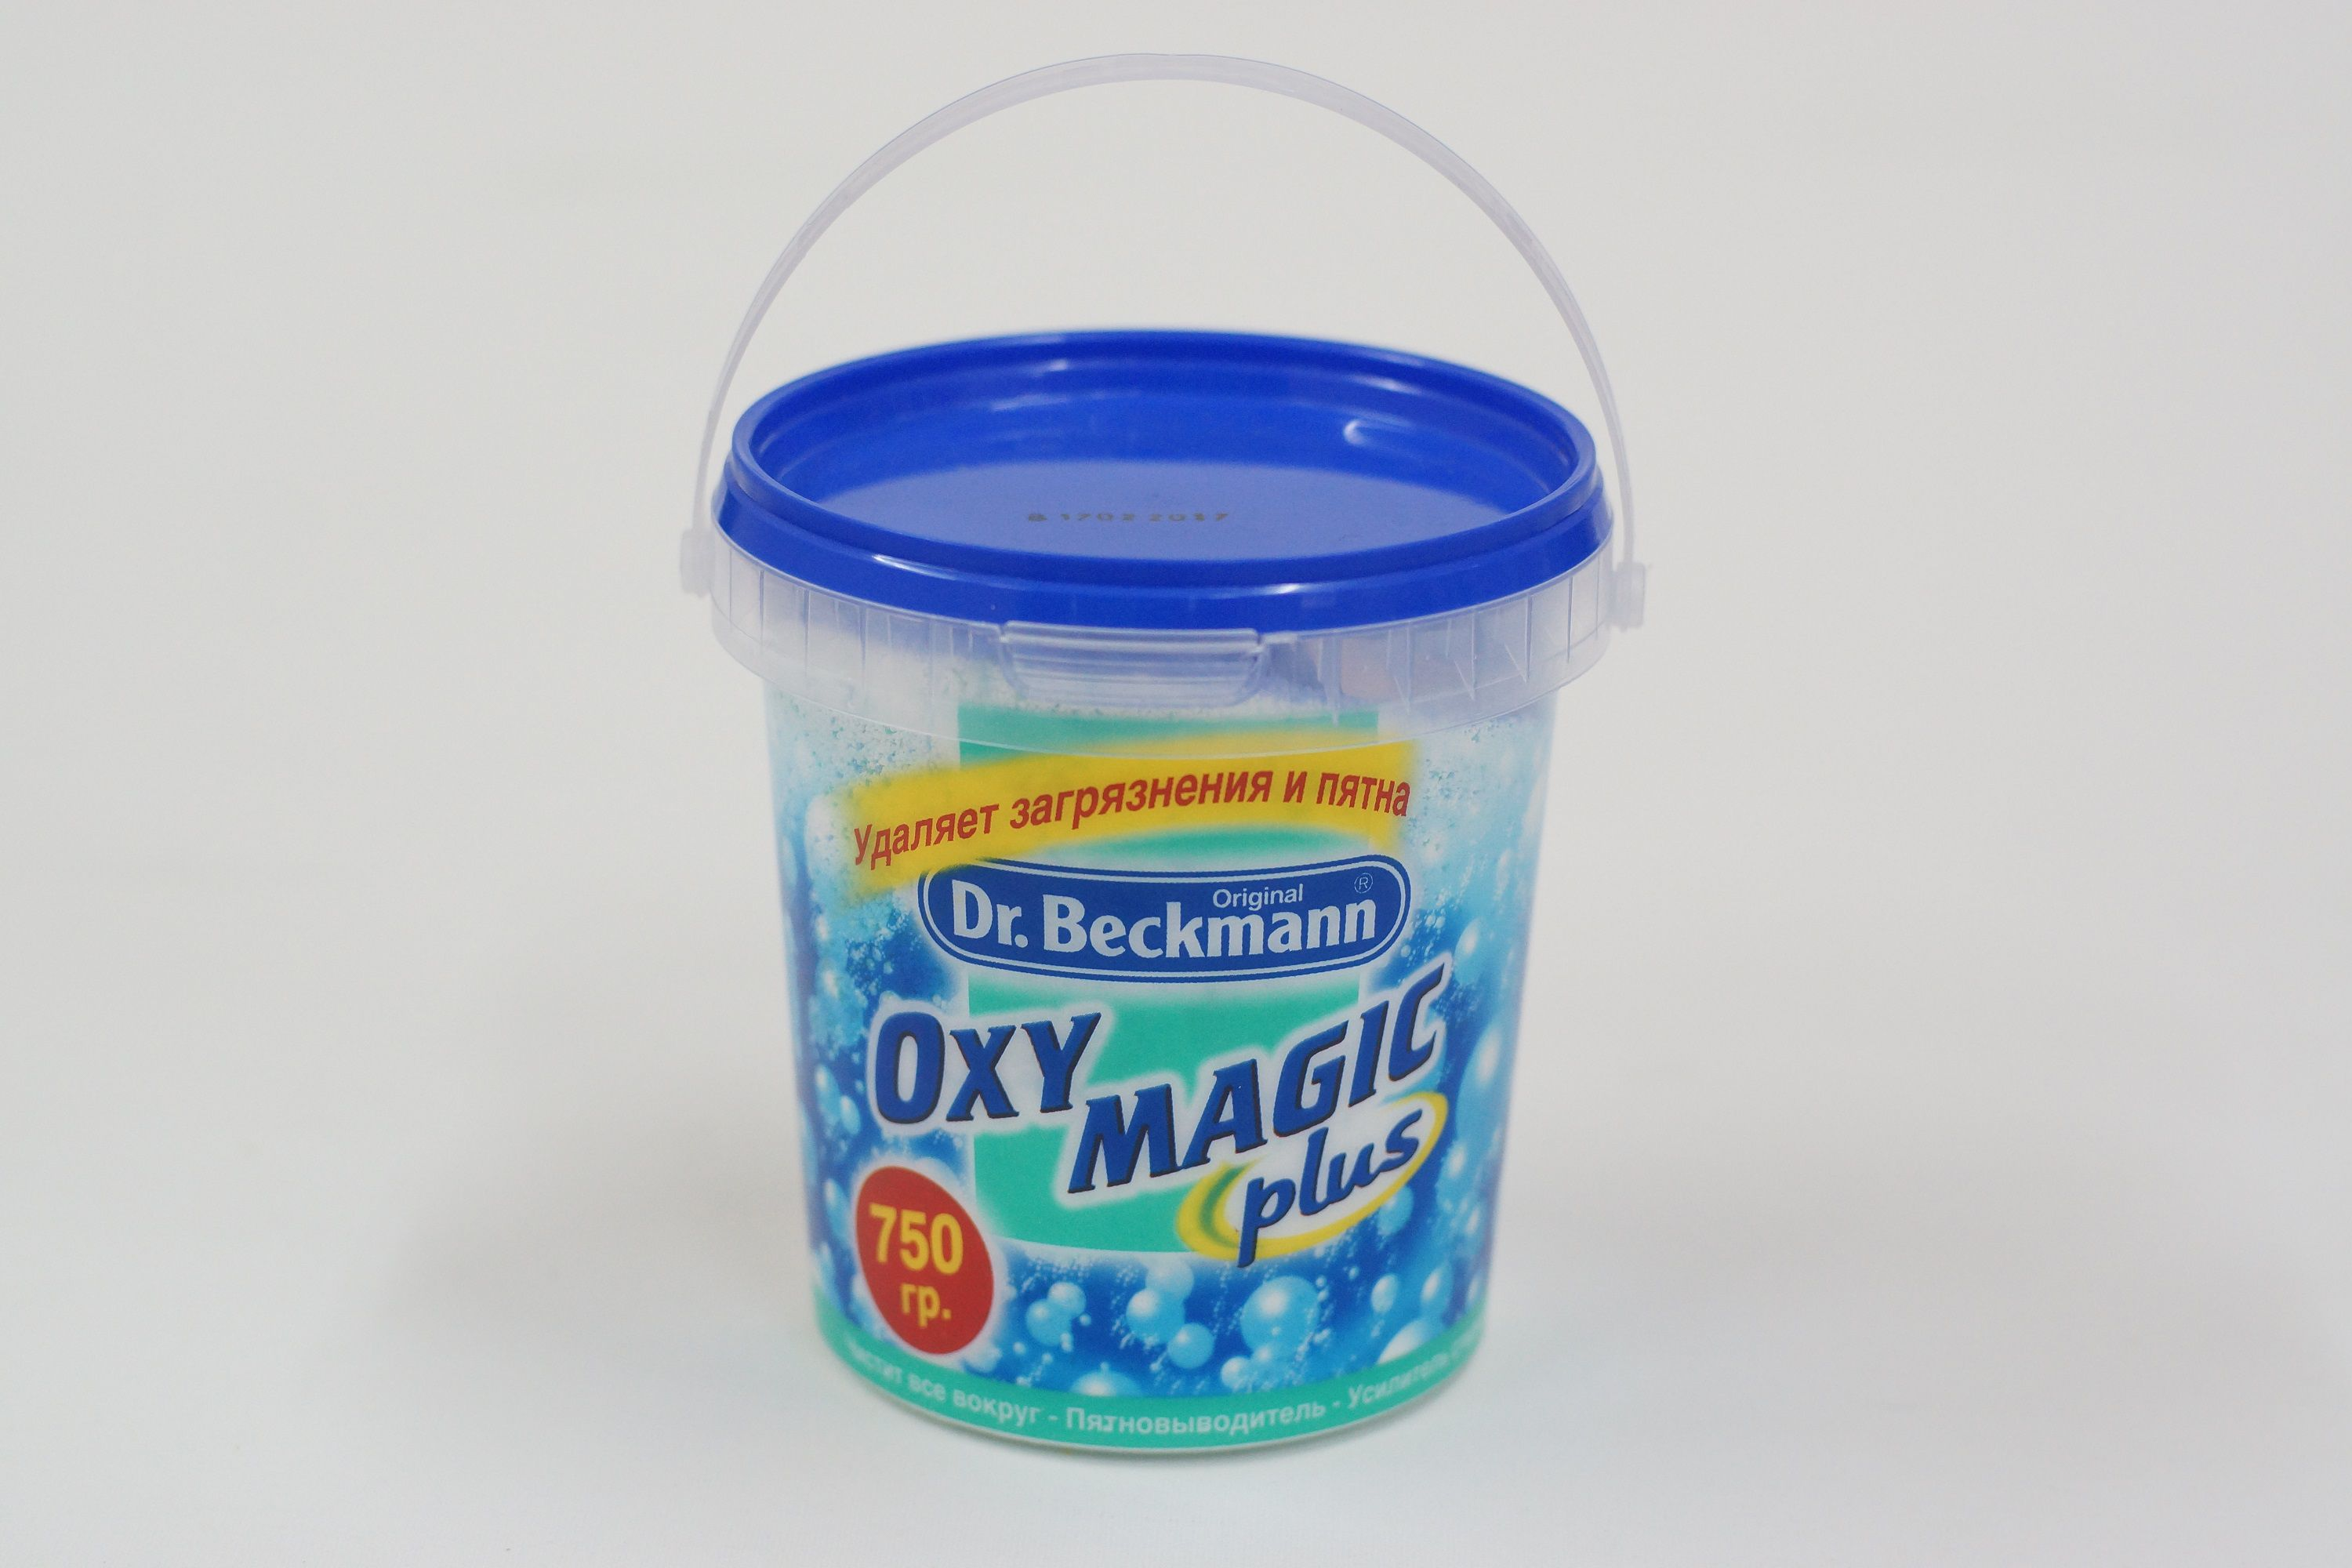 Dr.Beckmann Oxy magic plus 750 гр.